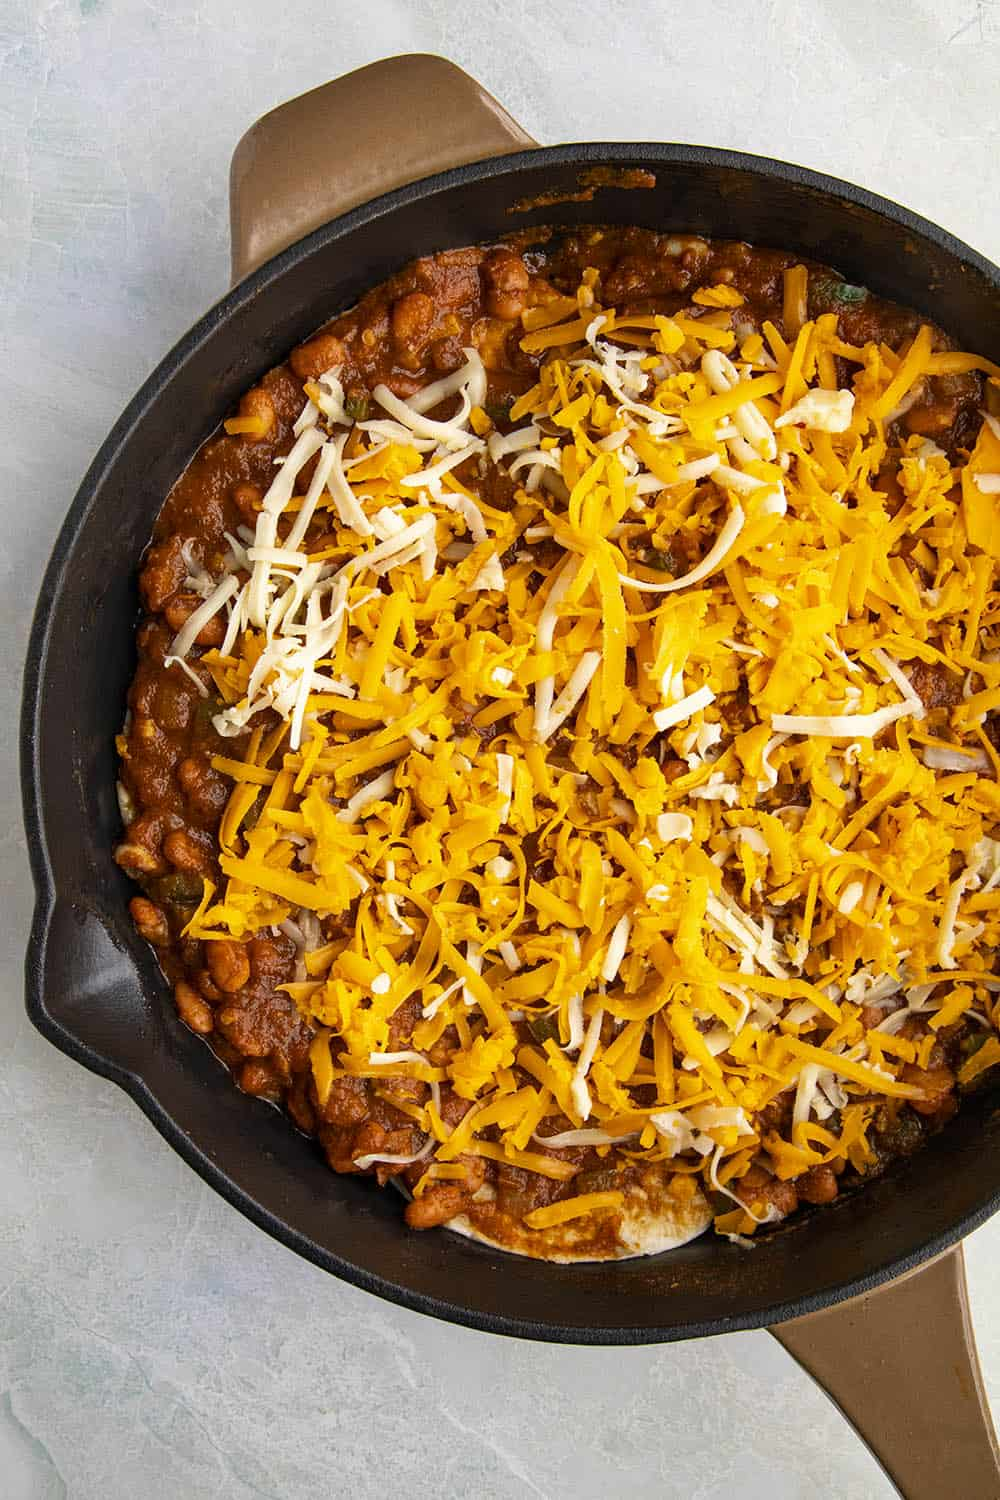 Topping the Huevos Ranchers Casserole with lots of shredded cheese